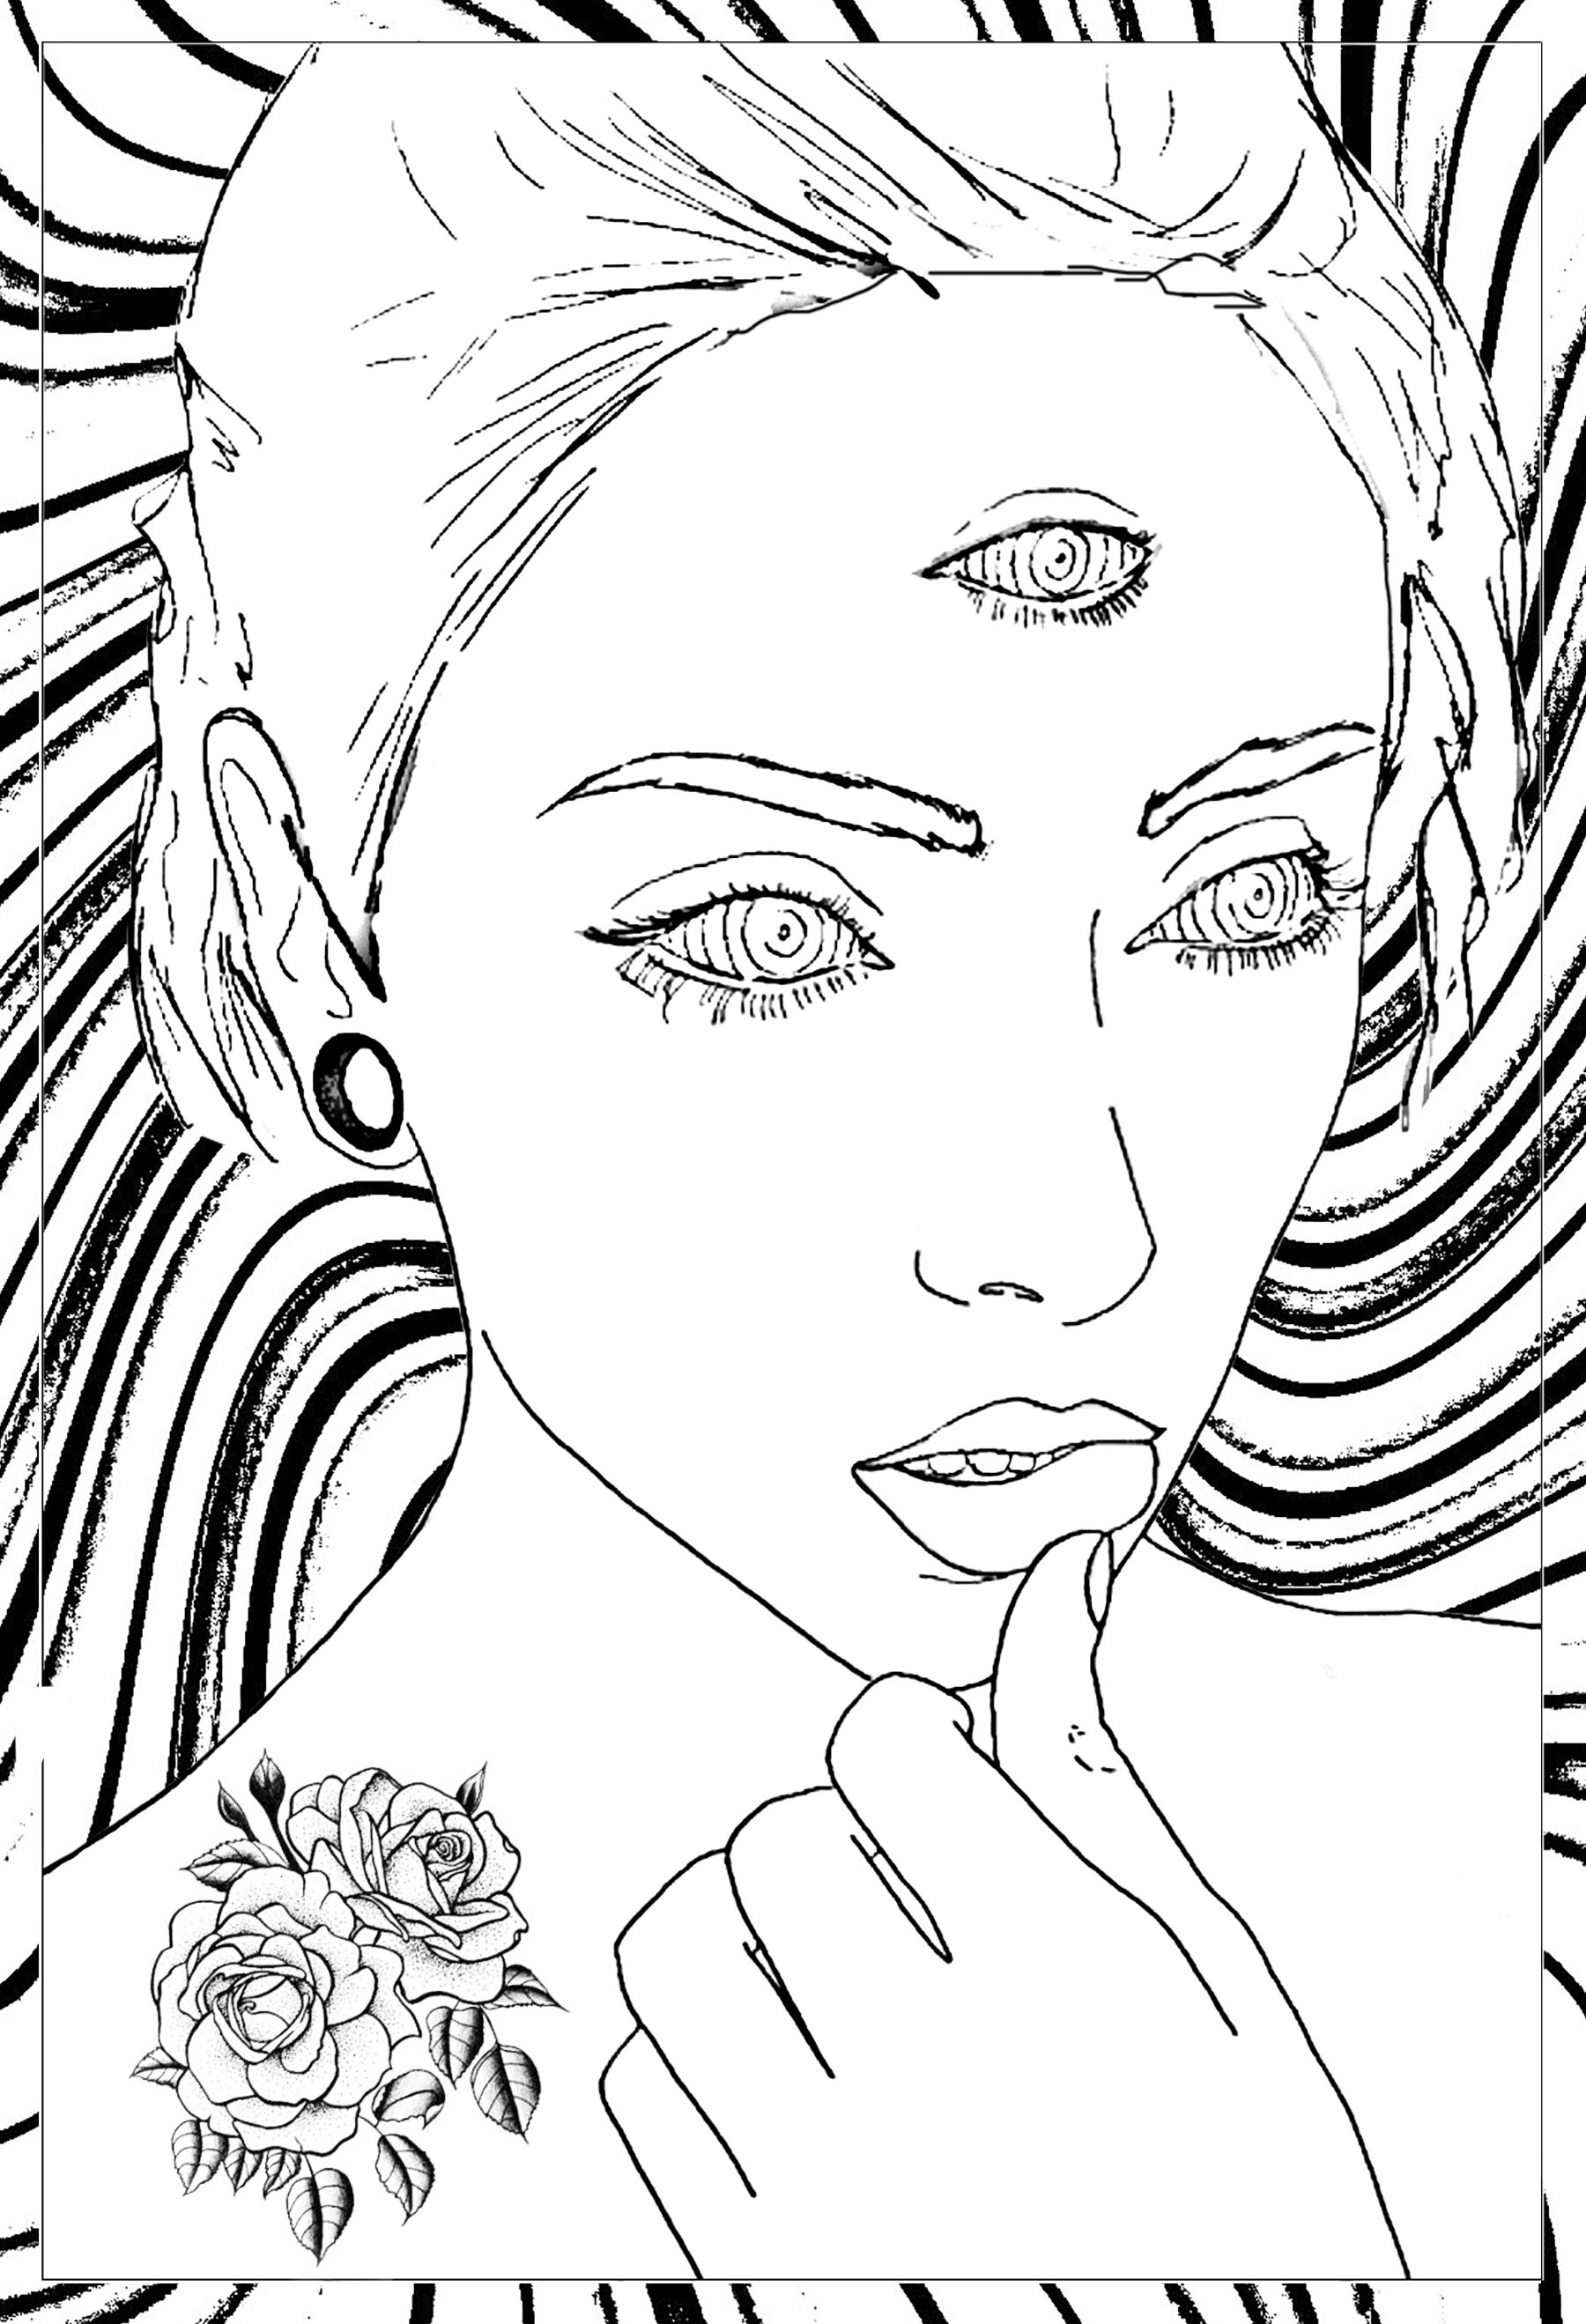 coloring pages for adults trippy psychedelic patterns hidden cat psychedelic adult pages trippy coloring for adults